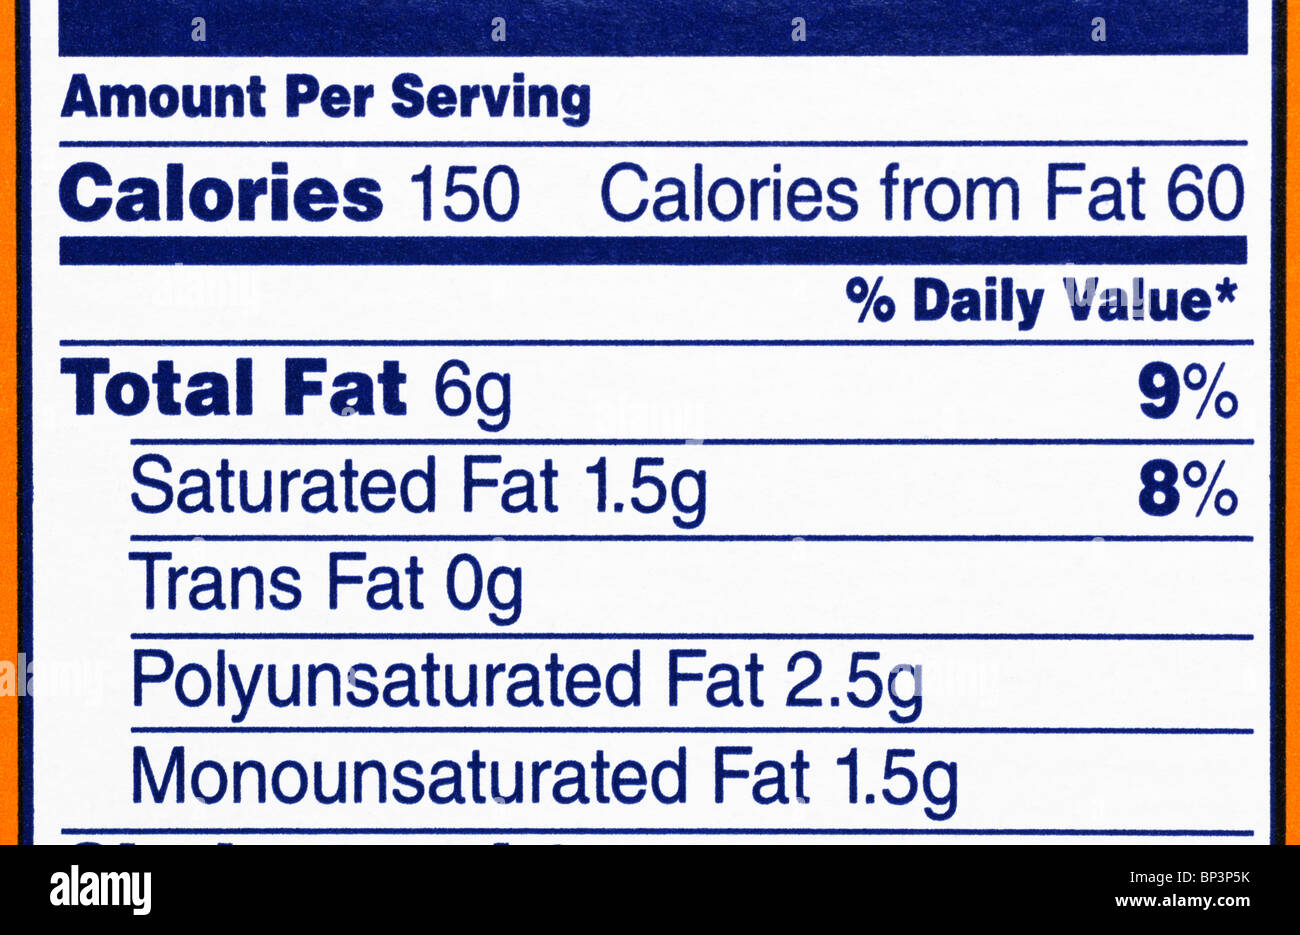 Nutrition facts label from a box of crackers, focusing on calorie and fat content. - Stock Image